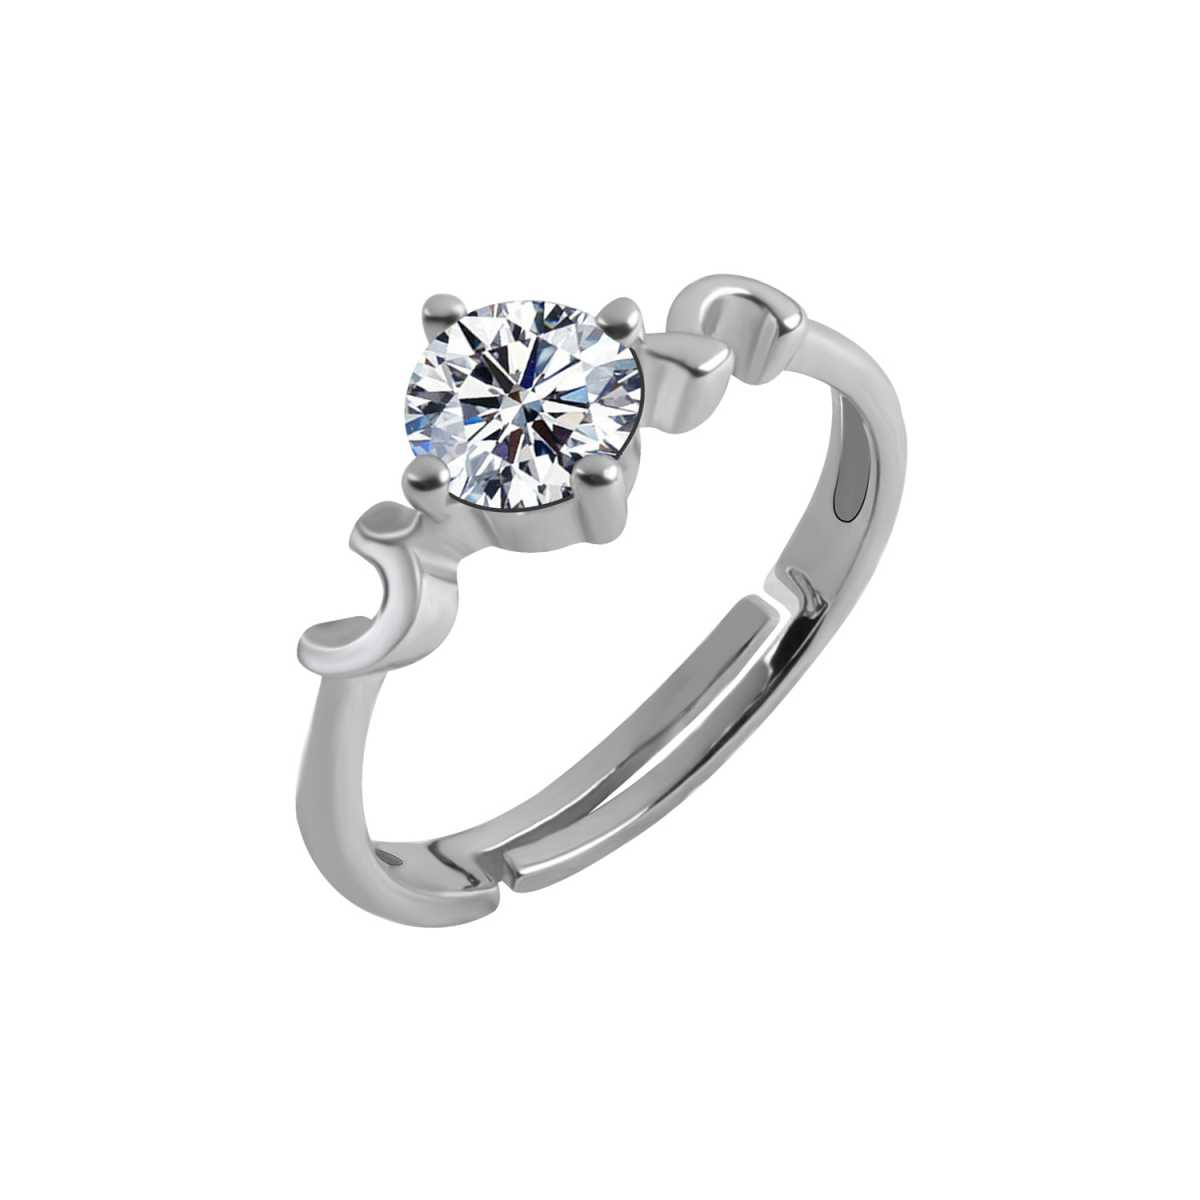 Silver Shine Silver Plated Elegant Classic Crystal Adjustable Ring for Girls and women for wedding